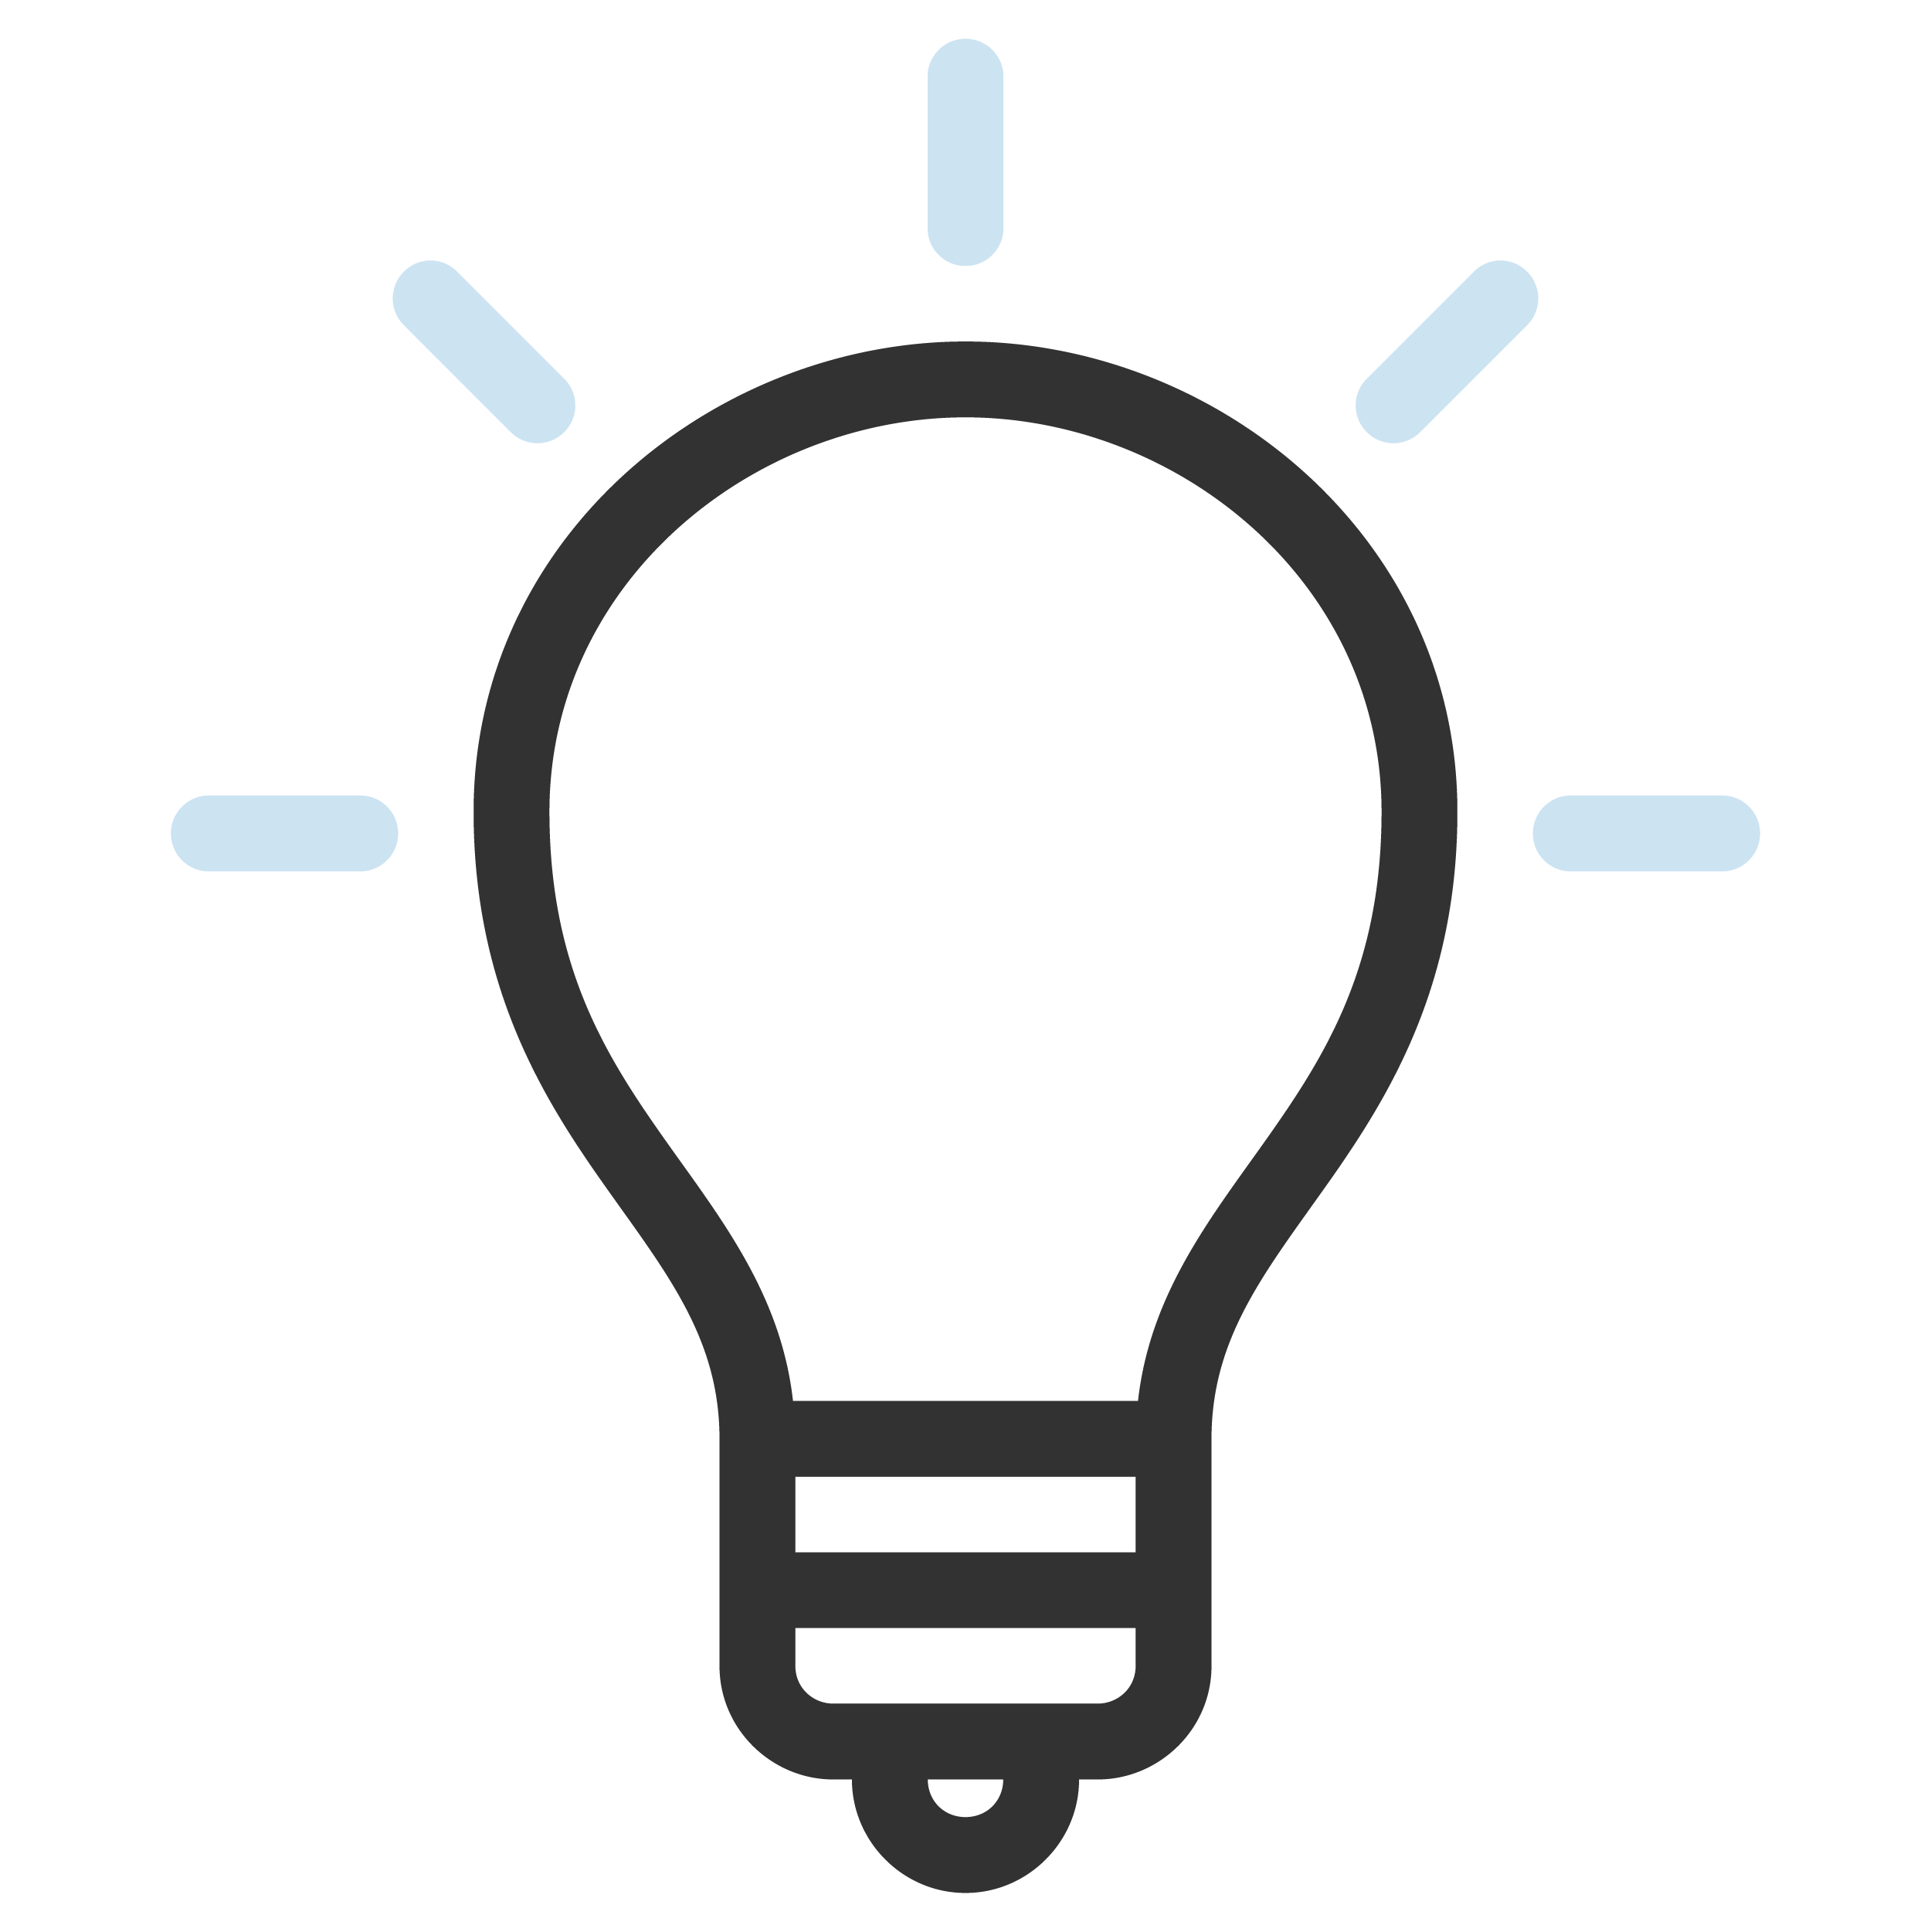 icon_light_bulb.png